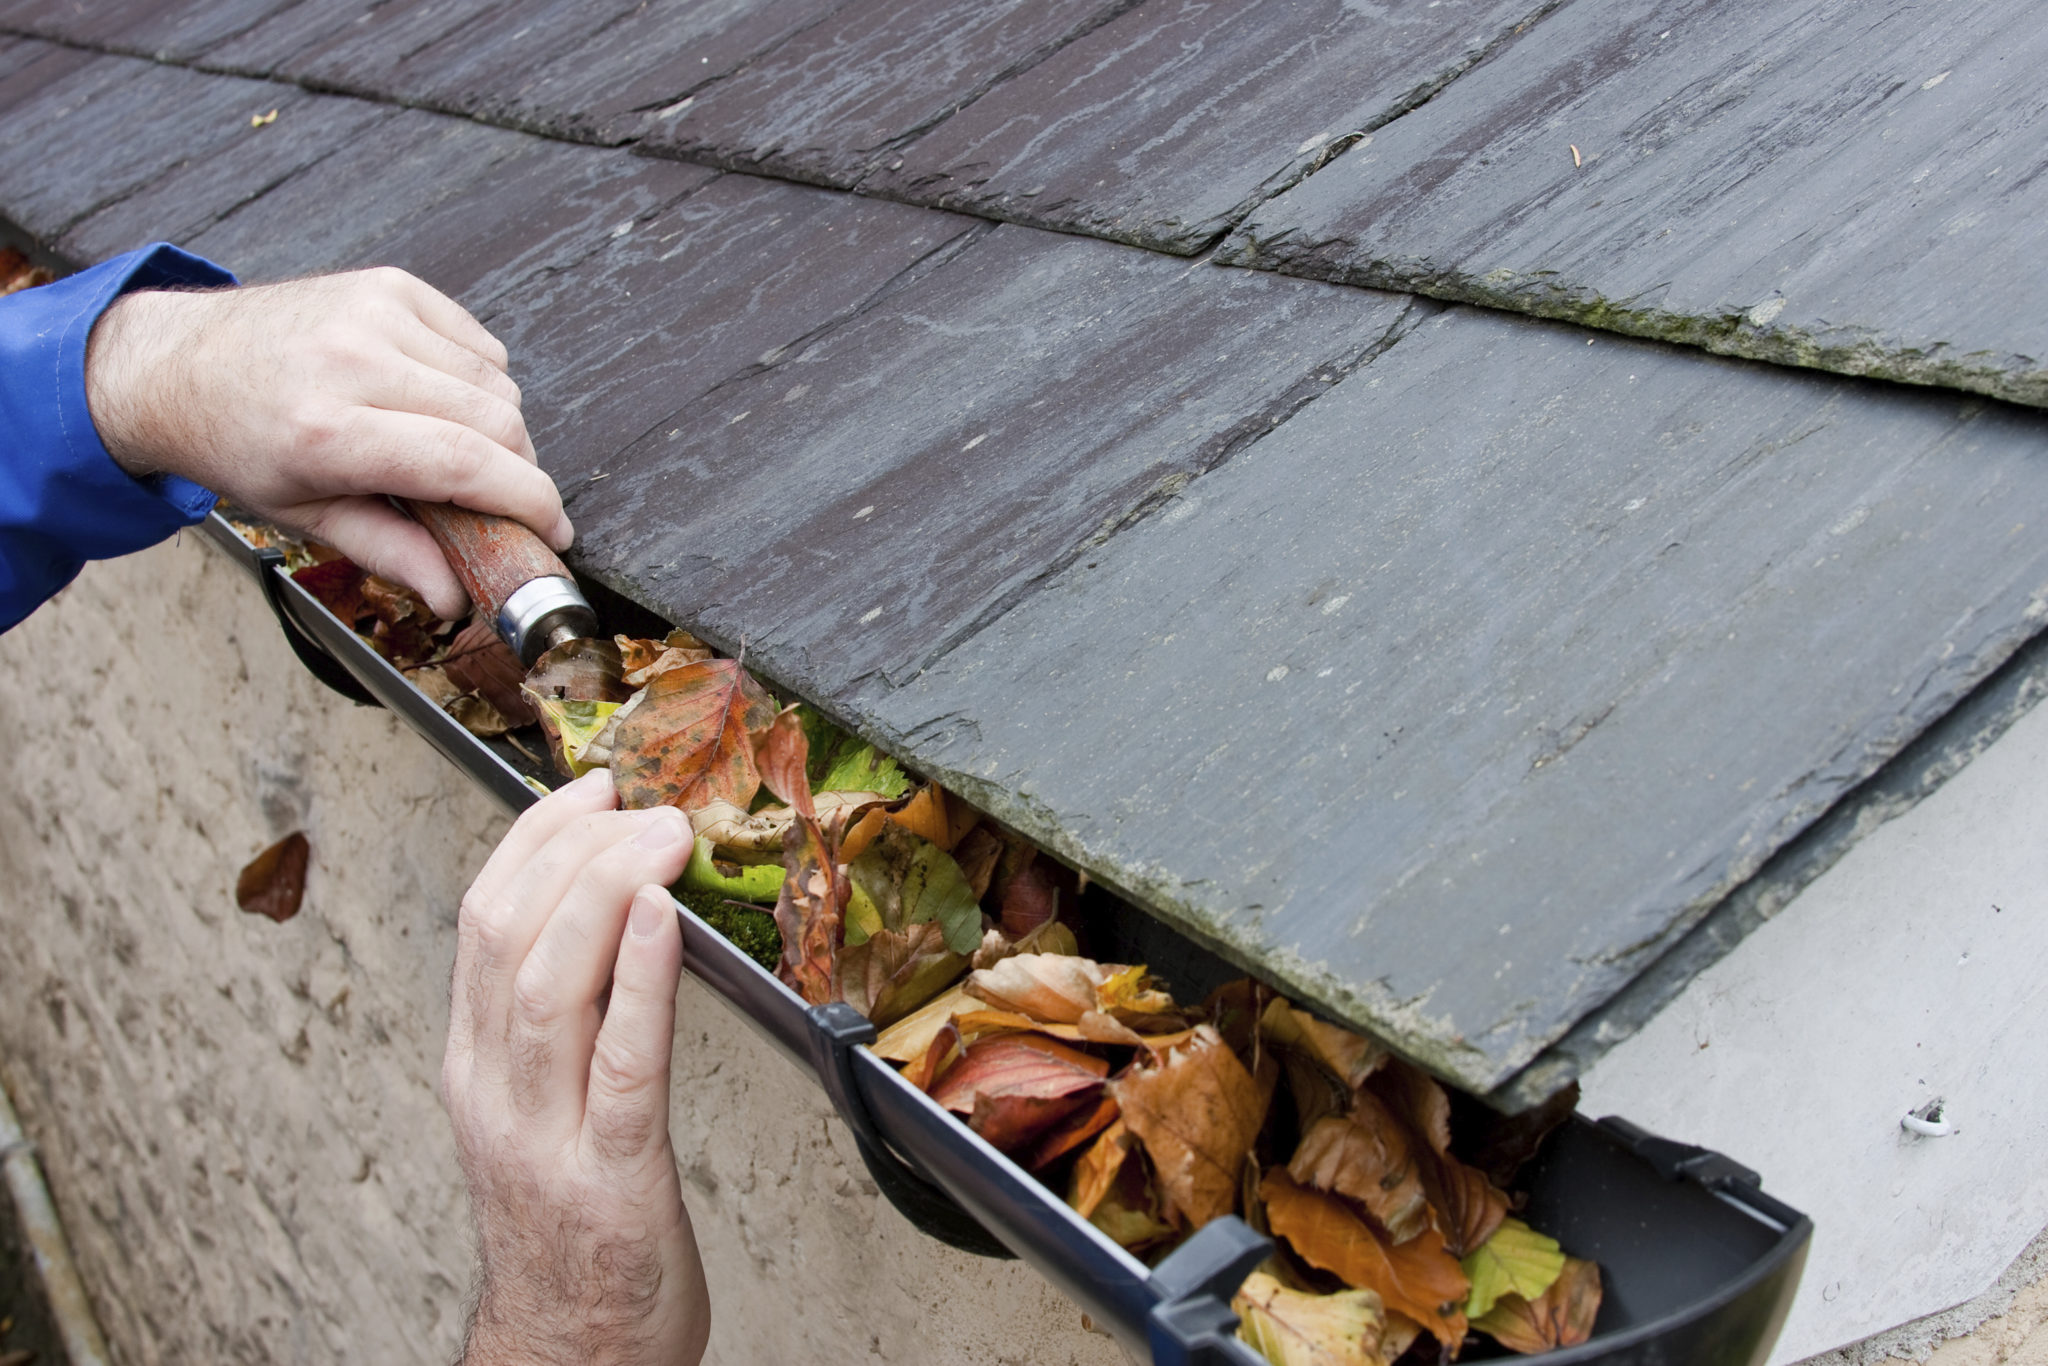 gutters clogged, hand cleans with tool